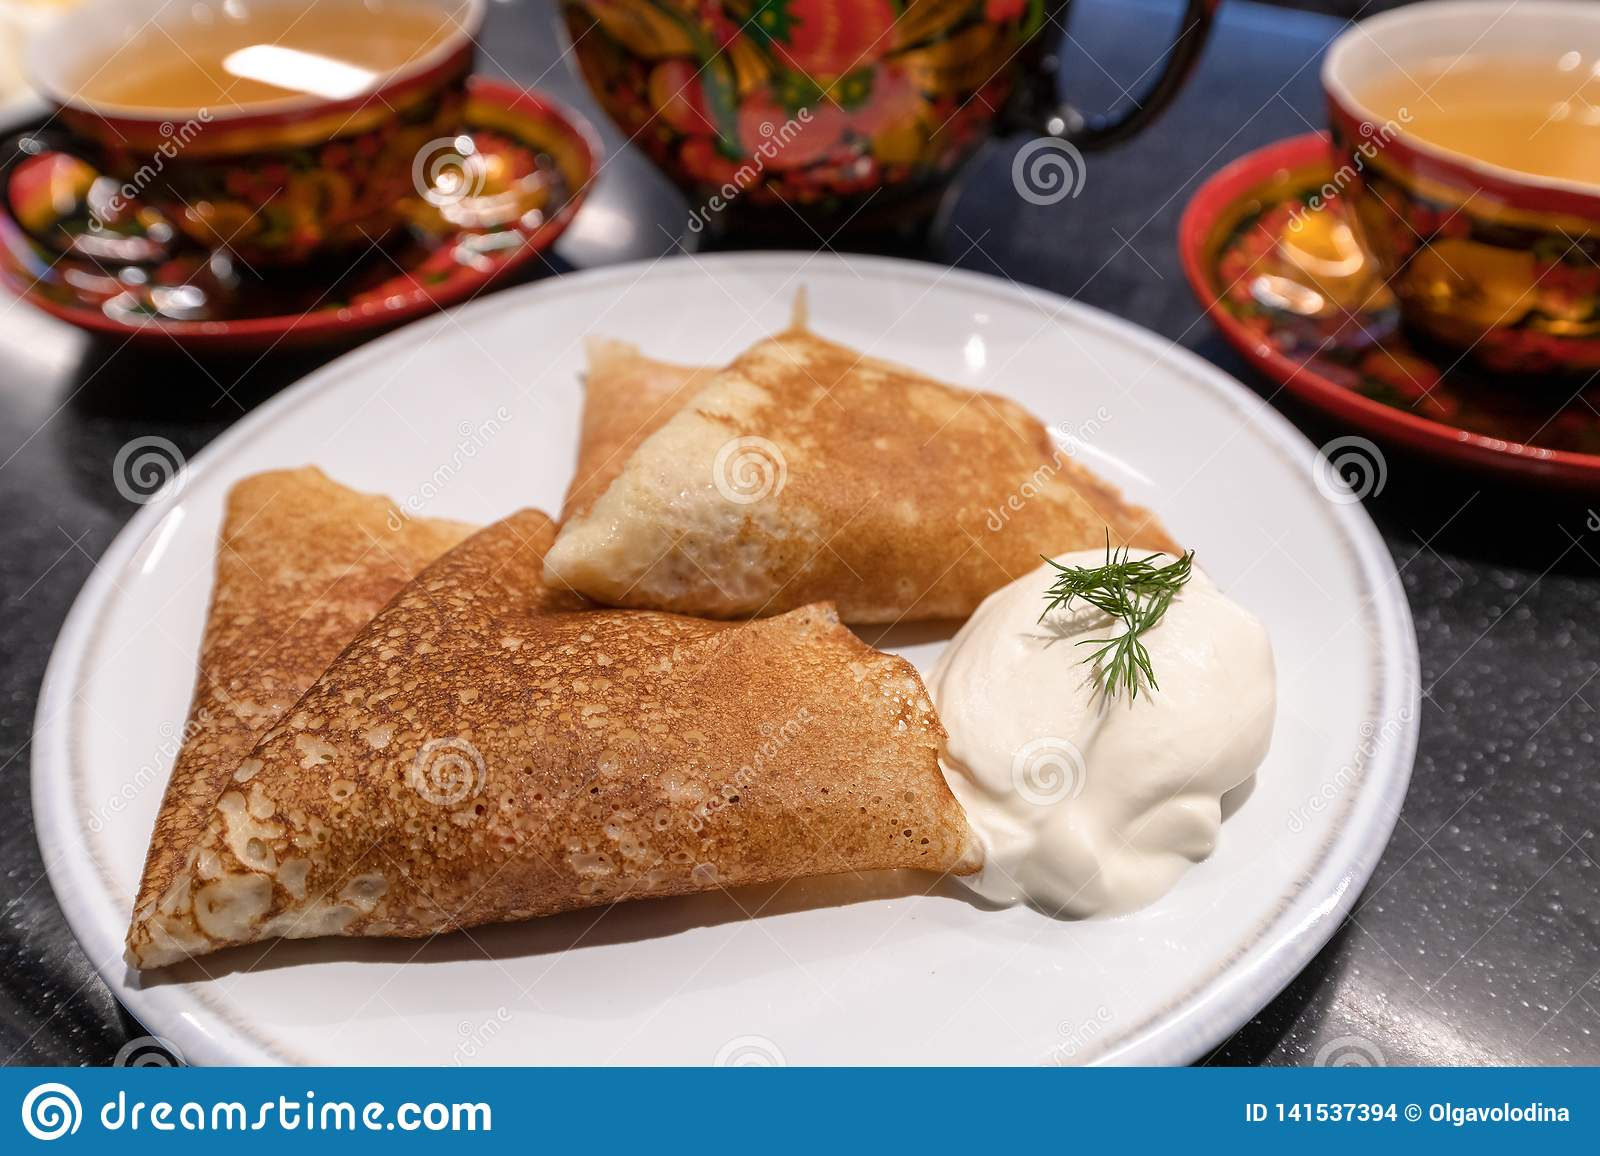 Pancakes with sour cream and tea in traditional dish for holiday Maslenitsa